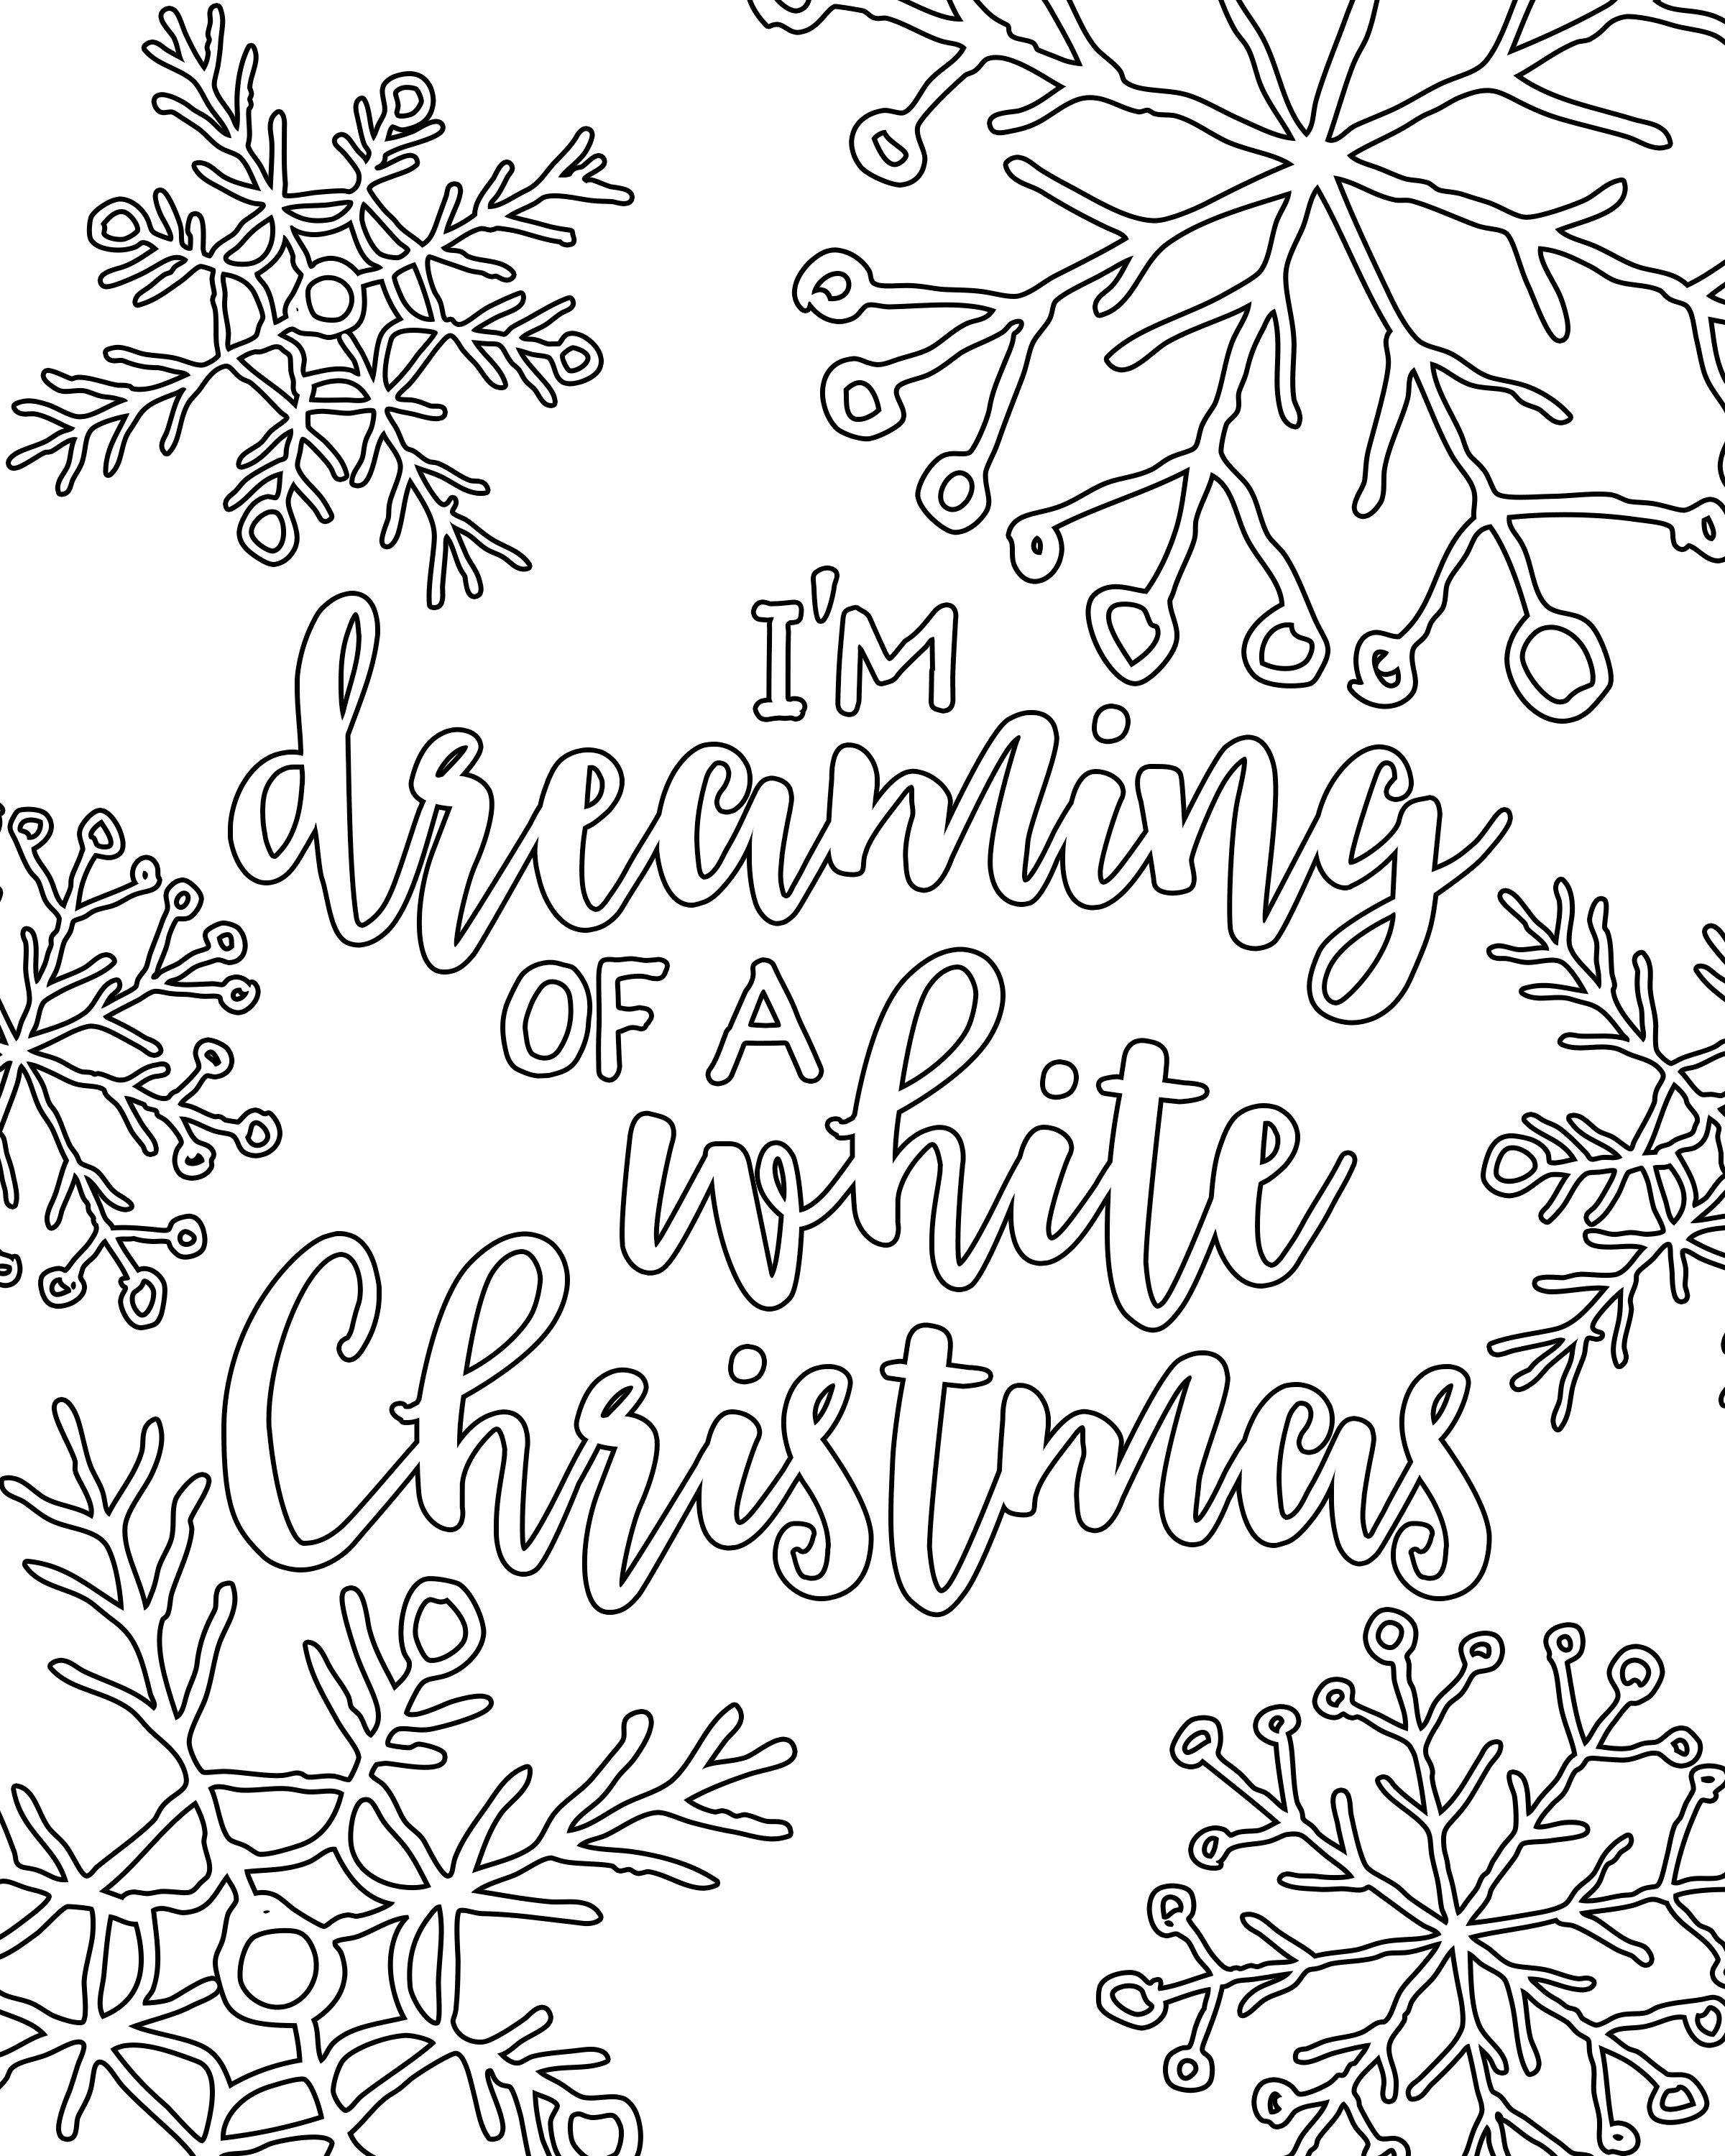 free printable white christmas adult coloring pages our handcrafted life. Black Bedroom Furniture Sets. Home Design Ideas